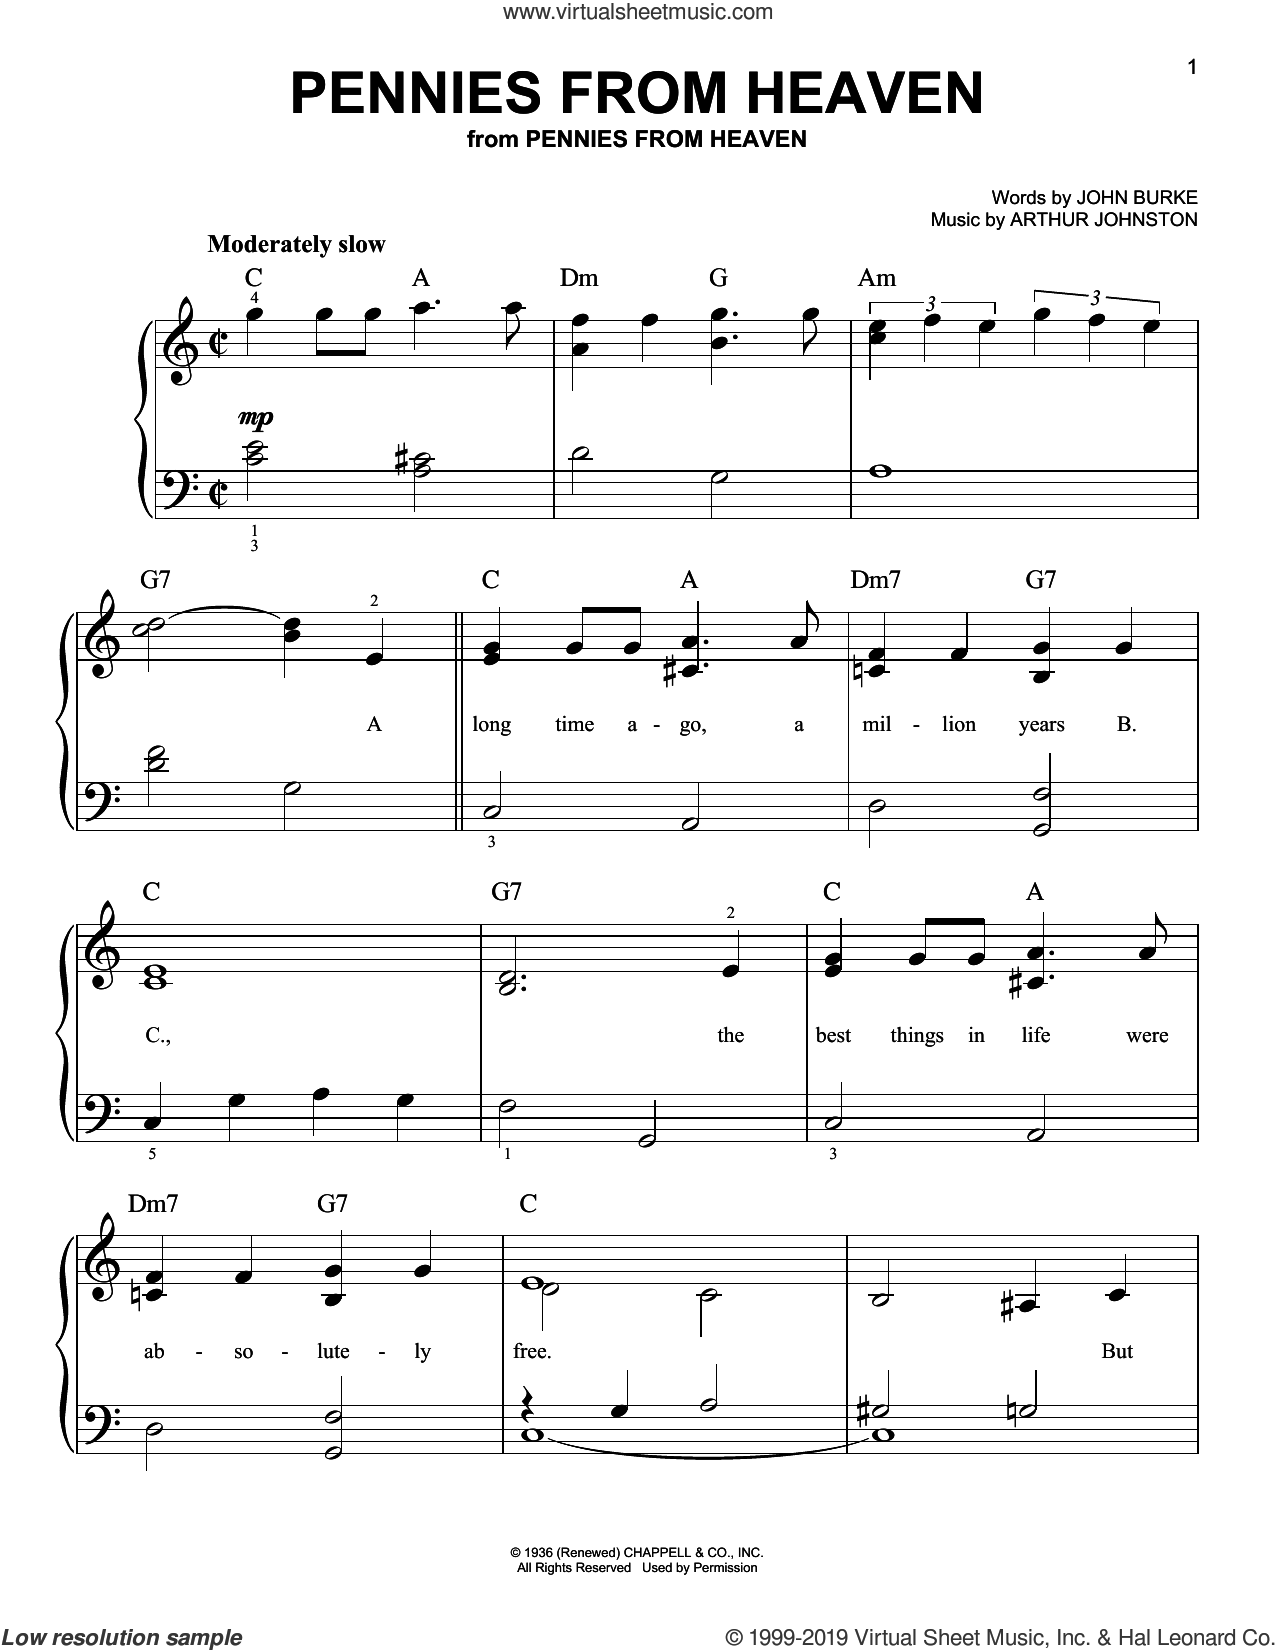 Pennies From Heaven sheet music for piano solo by John Burke and Arthur Johnston, easy skill level